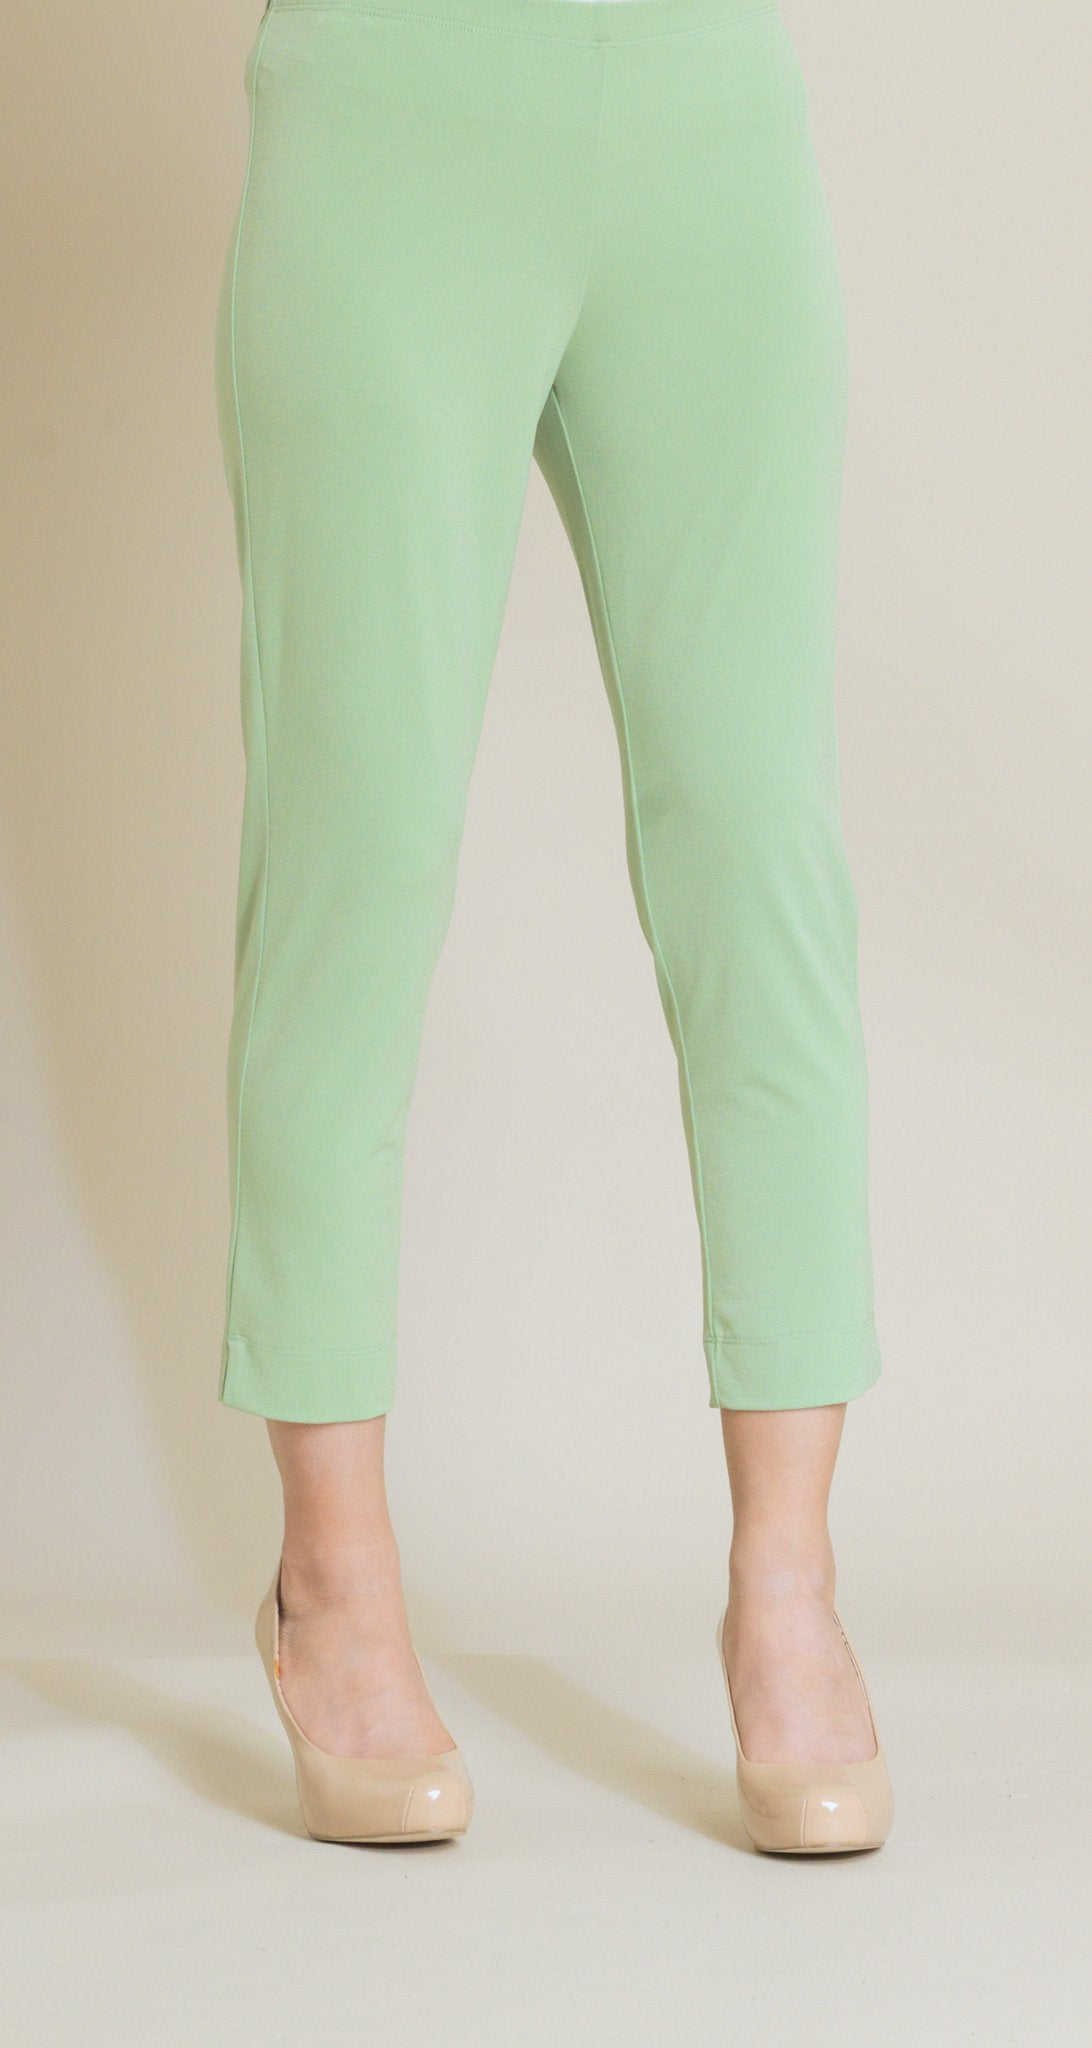 Pull On Capri - Mint Green - Final Sale! - Clara Sunwoo